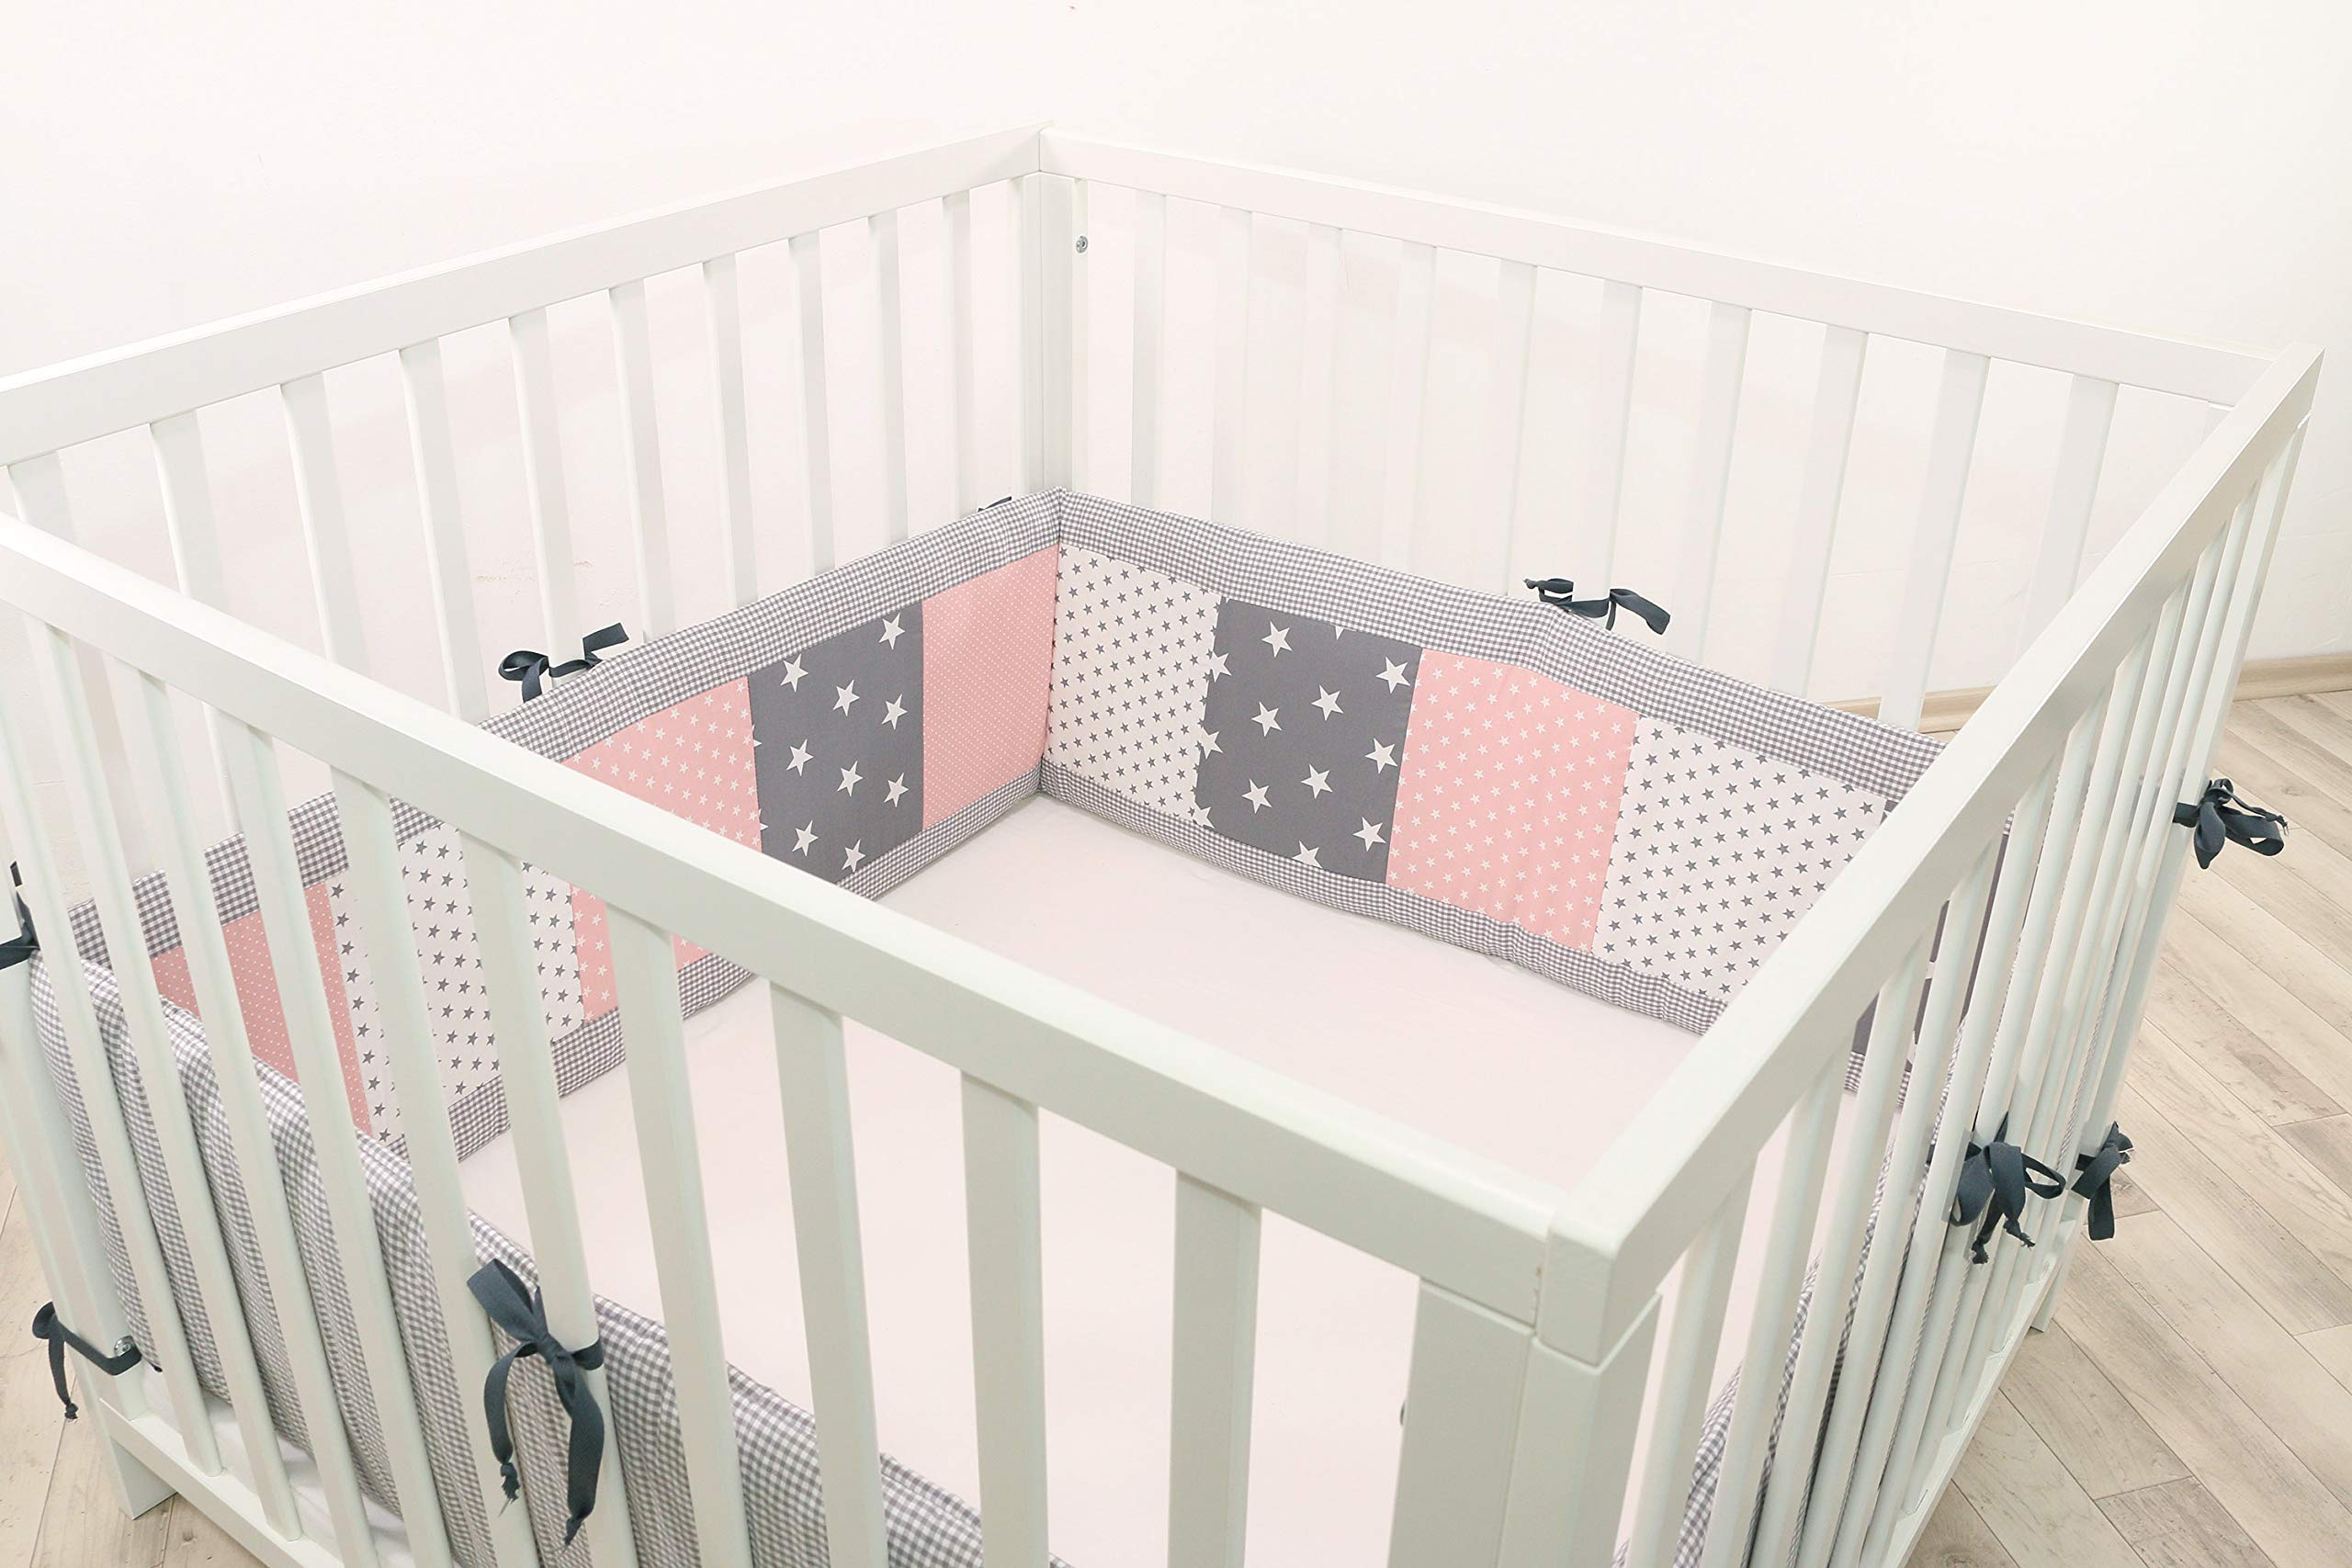 ULLENBOOM ® Bumper - Pink Grey (400 x 30 cm Baby playpen Bumper, Full Surround Bumper Pads for 100 x 100 cm playpen) ULLENBOOM This 400 x 30 cm patchwork bumper serves as a protective insert and surround for 100 x 100 cm playpens, to provide babies with protection - especially head protection - from playpen bars The sizes 200 x 30 cm and 400 x 30 cm (full surround) are for playpens - the 'full surround' bumper comes in two sections. ULLENBOOM  also offers additional sizes for 140 x 70 cm and 120 x 60 cm cots These bumpers can be washed at 30 °C and the materials used are certified according to the Oeko-Tex standard (tested for harmful substances, hypoallergenic); smooth outer fabric: 100% cotton (Oeko-Tex); soft, thick wadding: 100% polyester (Oeko-Tex) 1